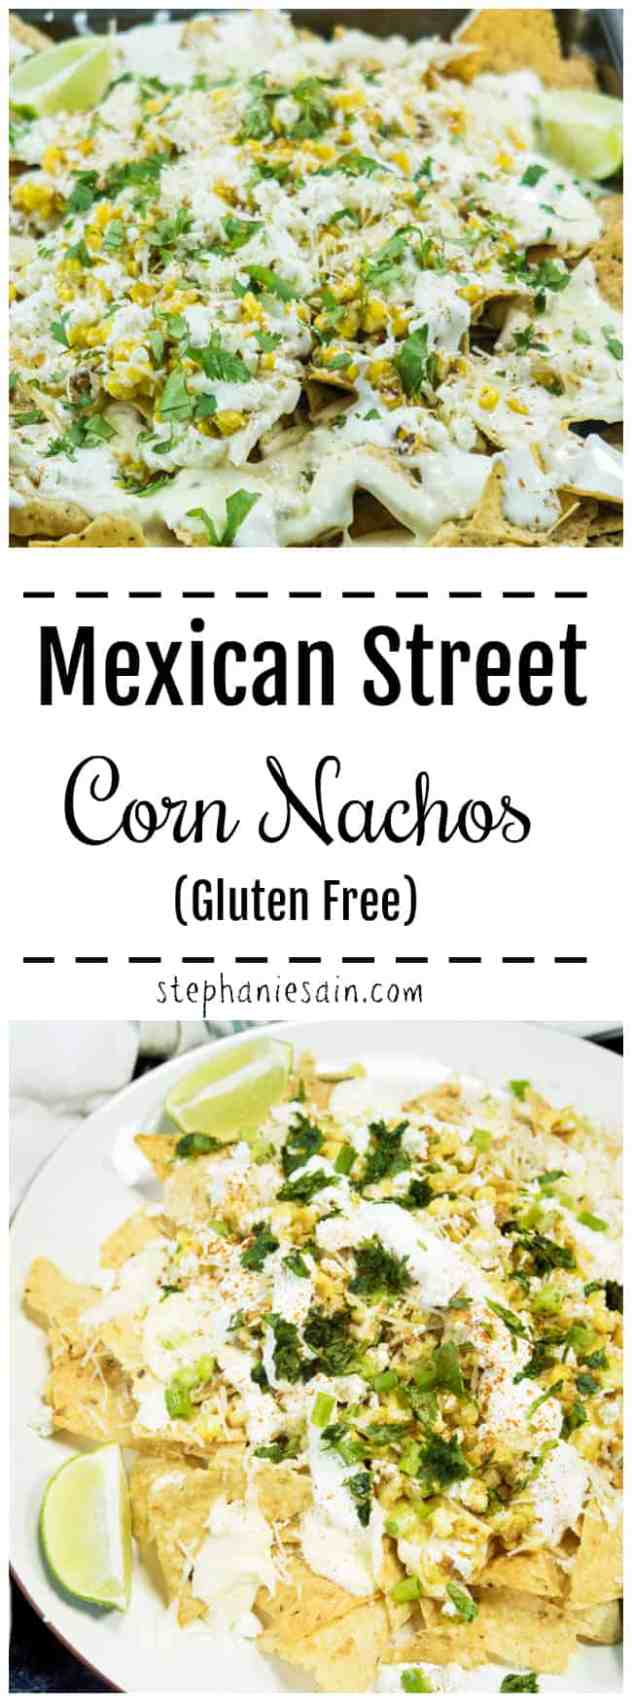 These Mexican Street Corn Nachos are perfect for game day, a party appetizer, or even dinner. Roasted corn topped on crunchy nachos and layered with creamy cheese sauce, cilantro, onions & sour cream. Gluten Free.